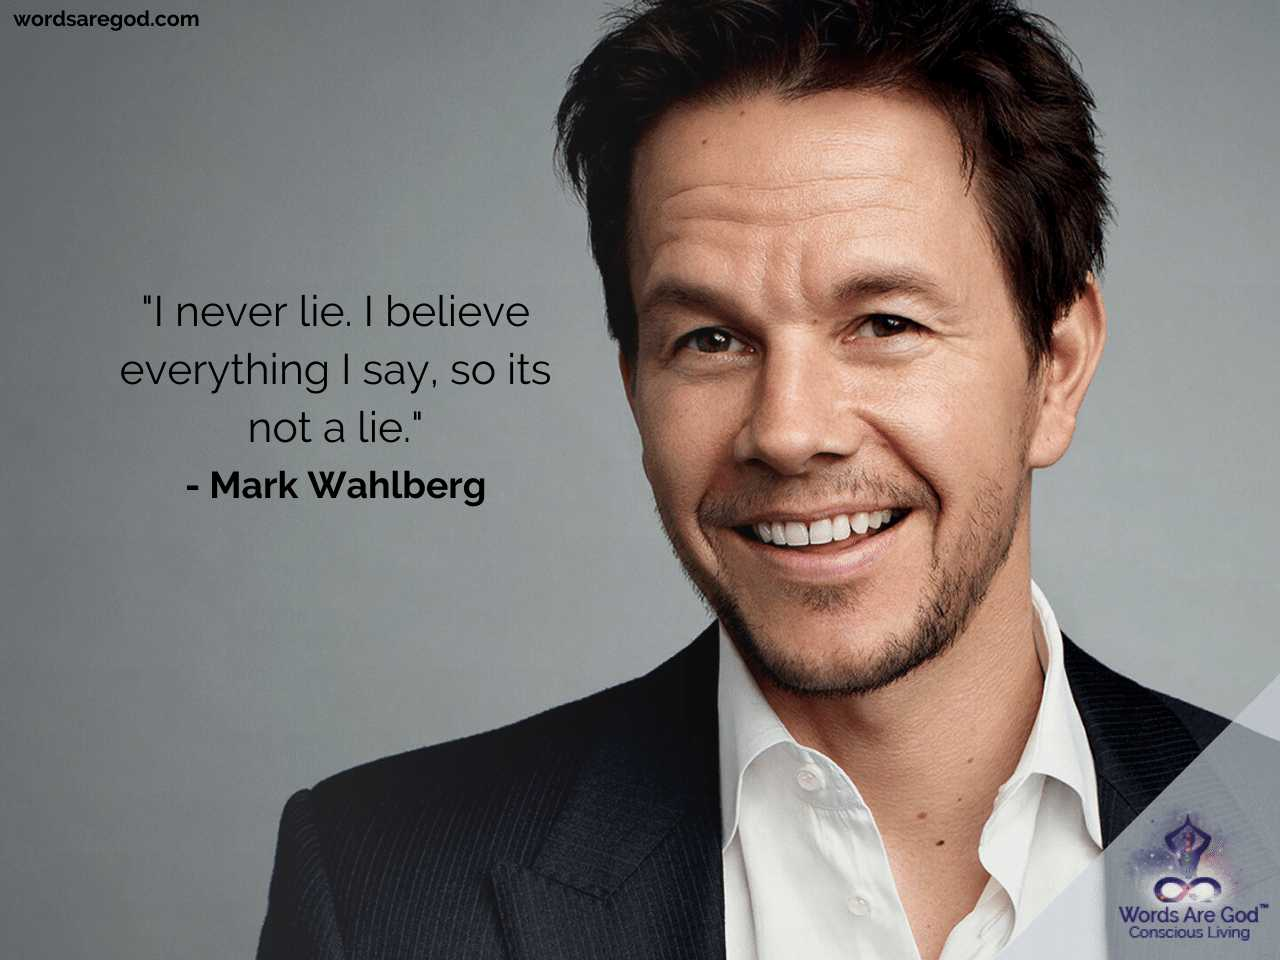 Mark Wahlberg Life Quotes by Mark Wahlberg